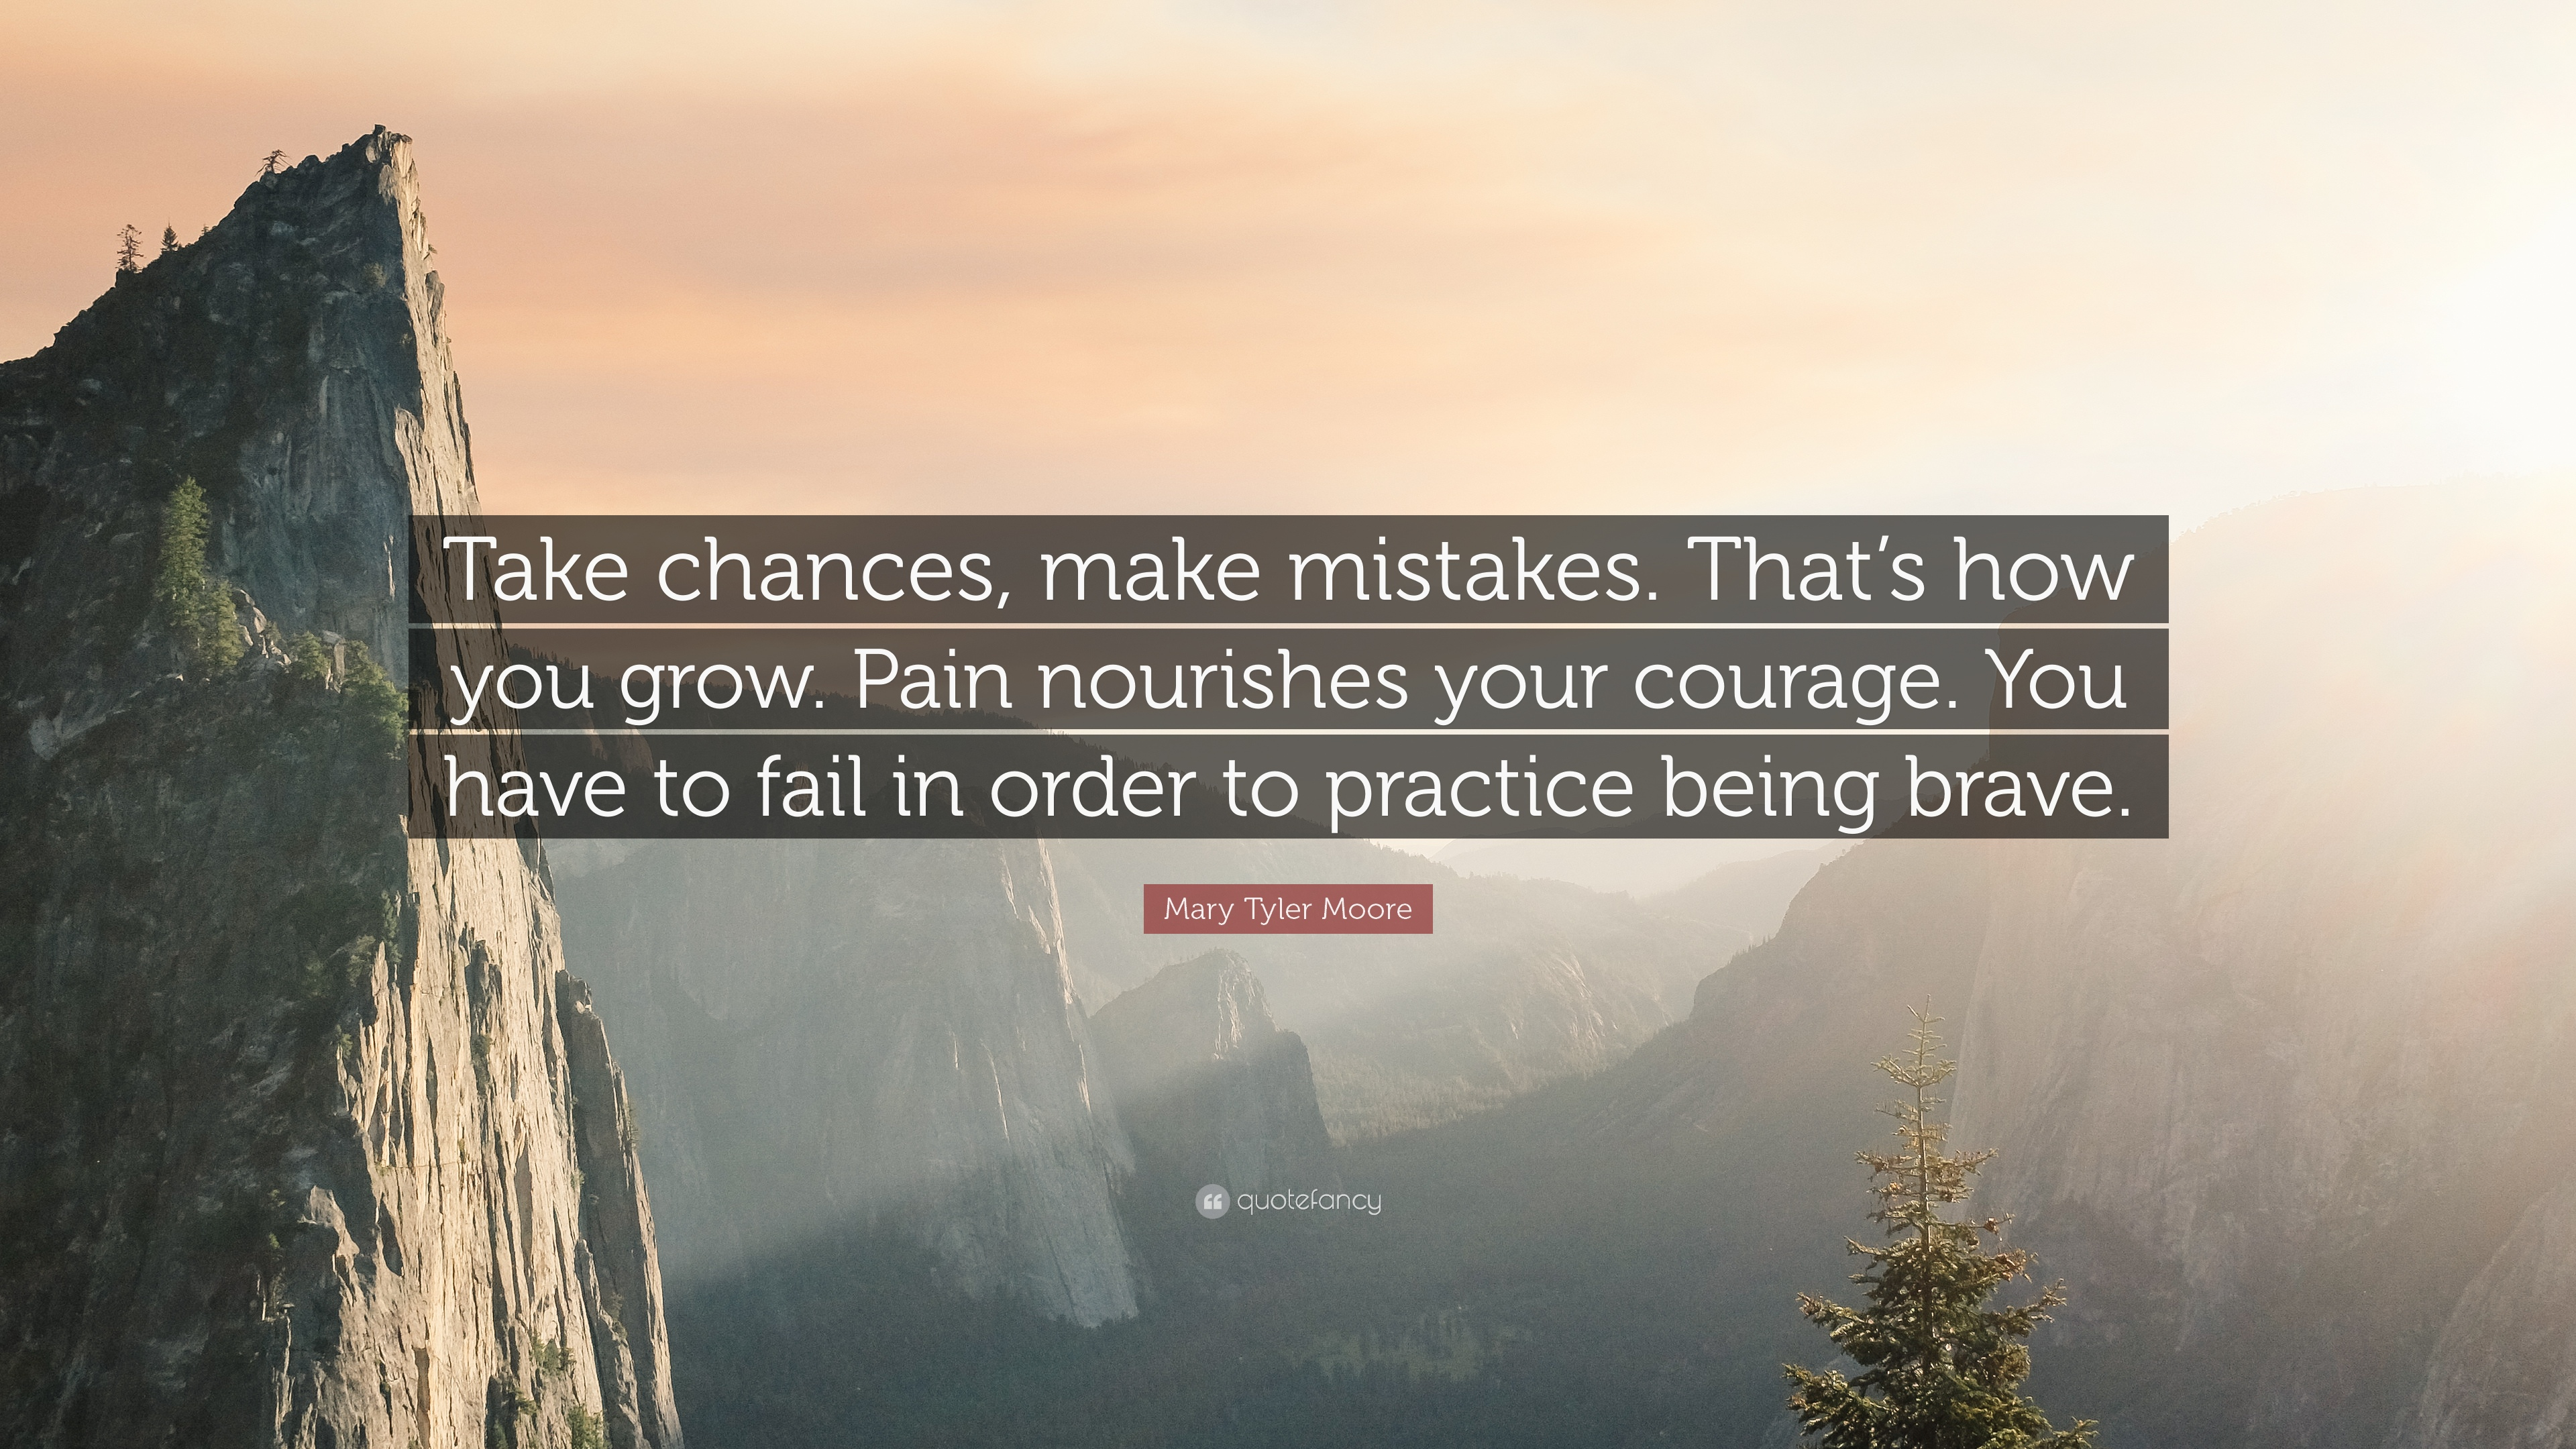 Image result for take chances make mistakes mary tyler moore